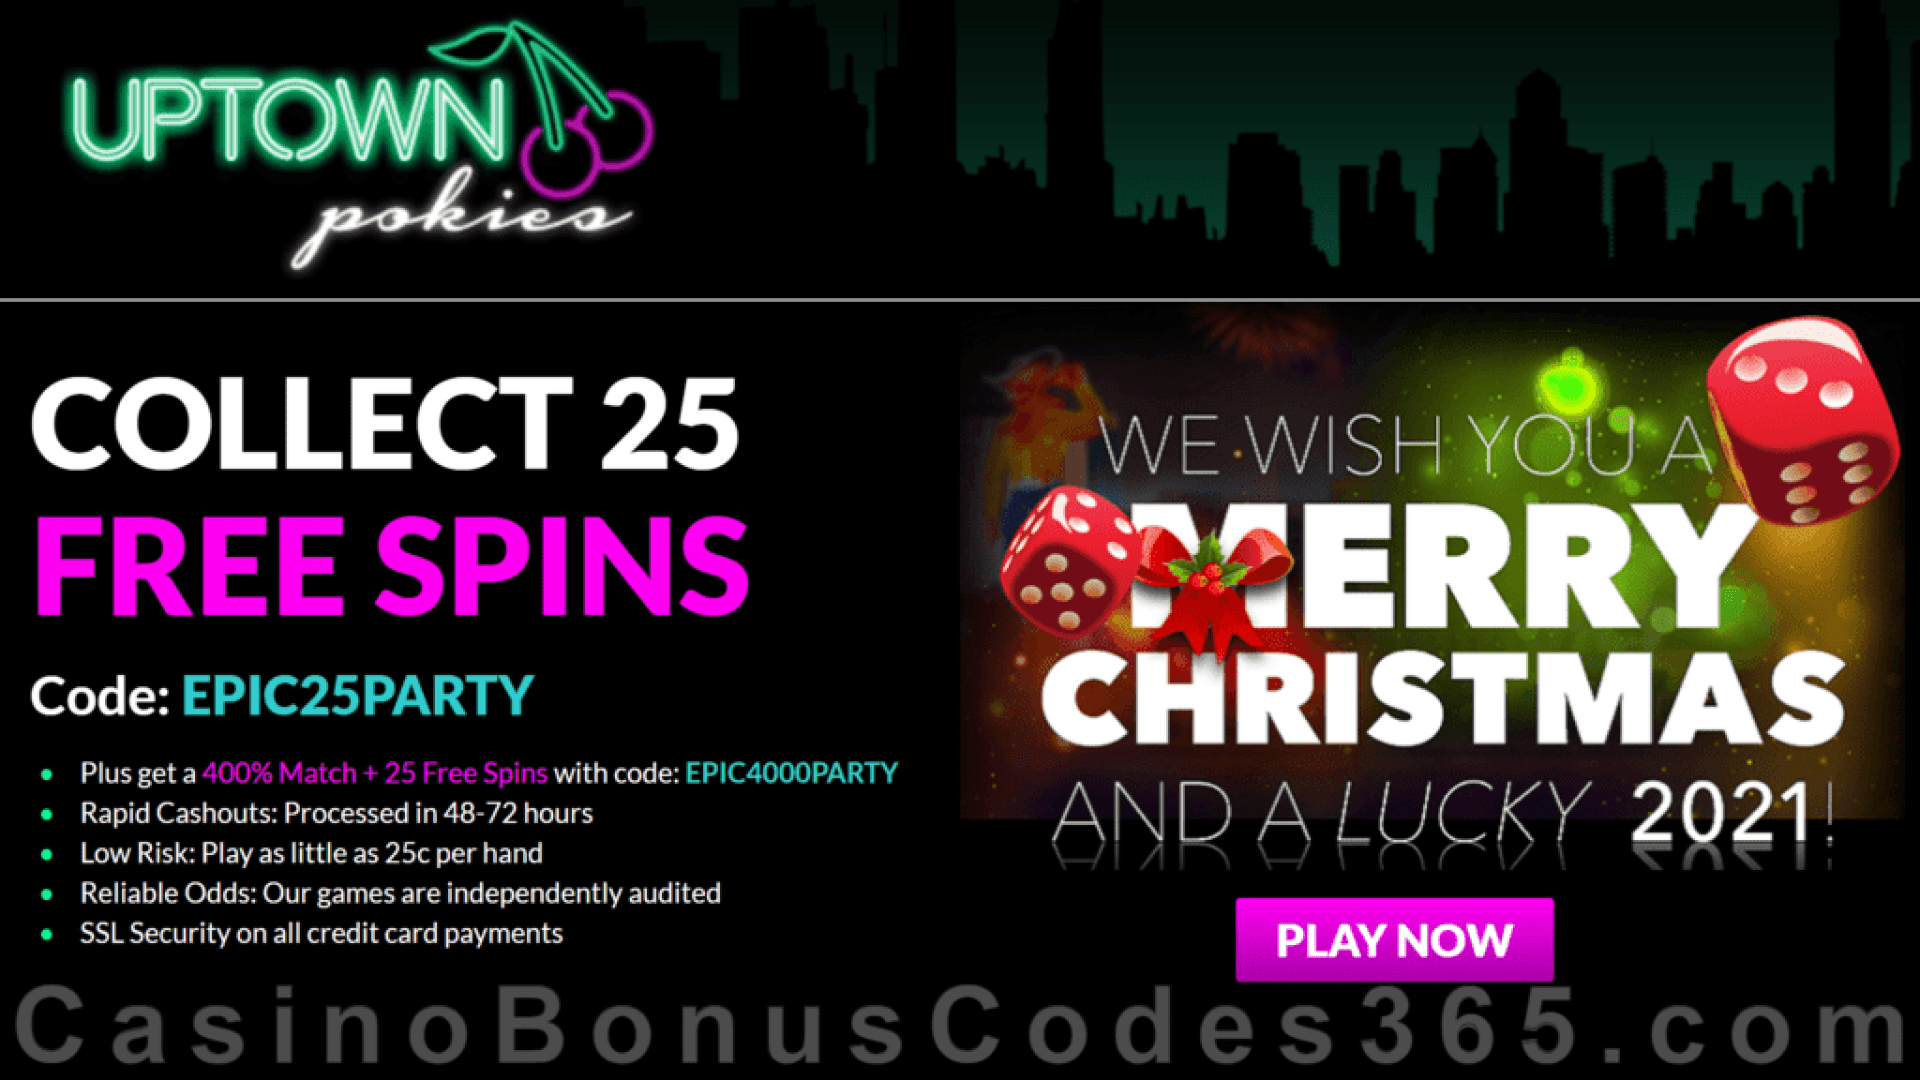 Uptown Pokies 25 FREE Spins on RTG Epic Holiday Party and 400% Match Bonus plus 25 FREE Spins Xmas 2020 Special Promotion